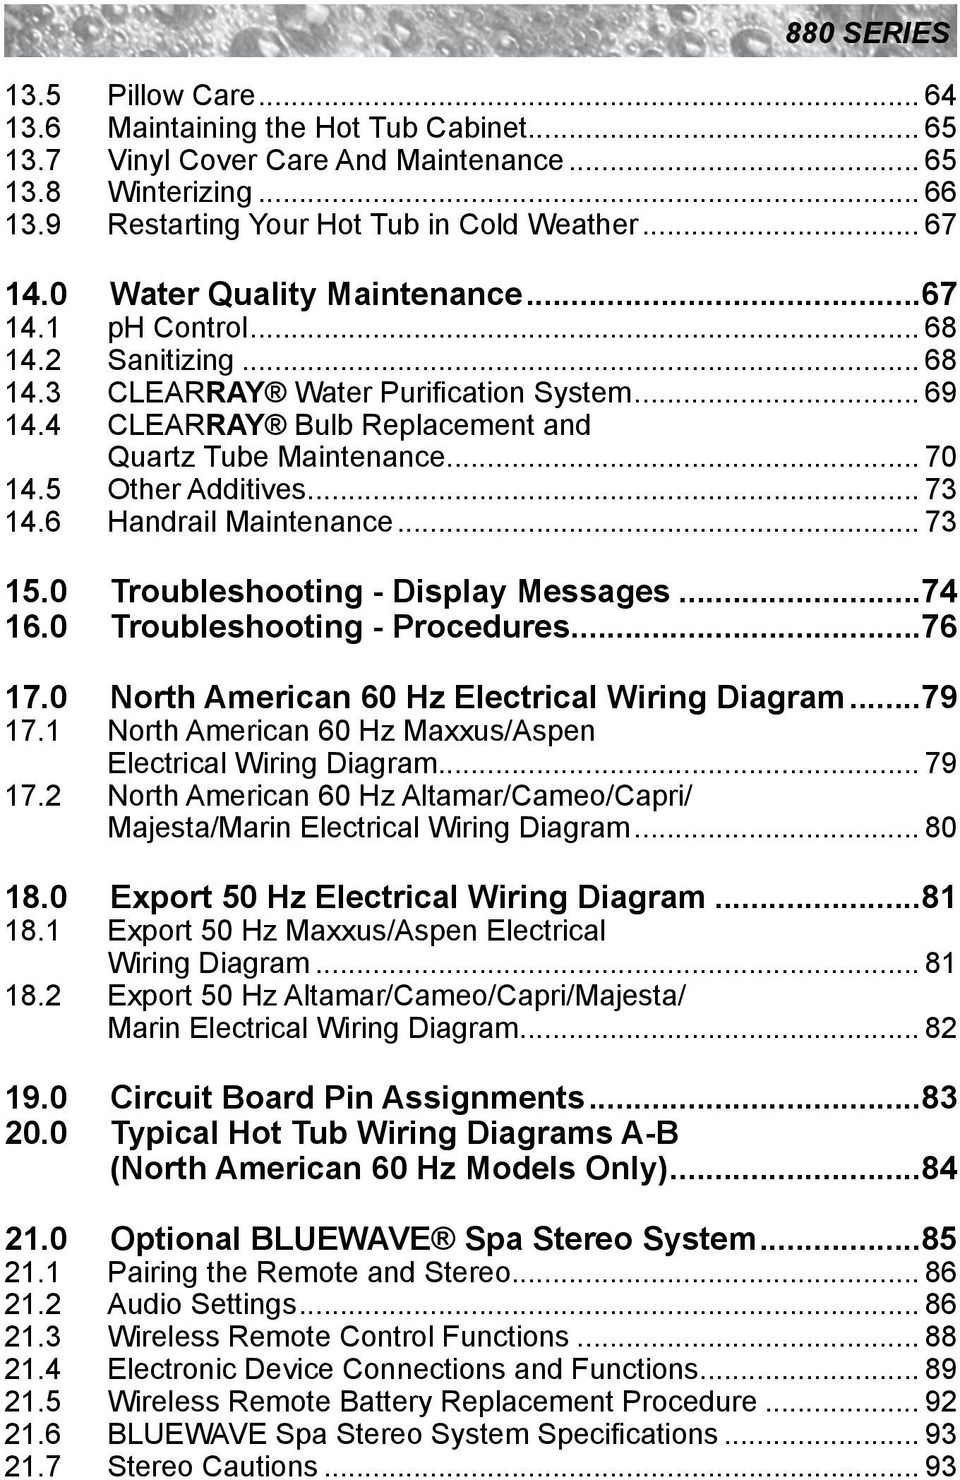 Pn B Rev A 880 Series Owner S Manual Maxxus Aspen Optima Cameo Hot Tub Pump Wiring Diagram Also Carrier Air Handler 0 Troubleshooting Display Messages7 60 Procedures